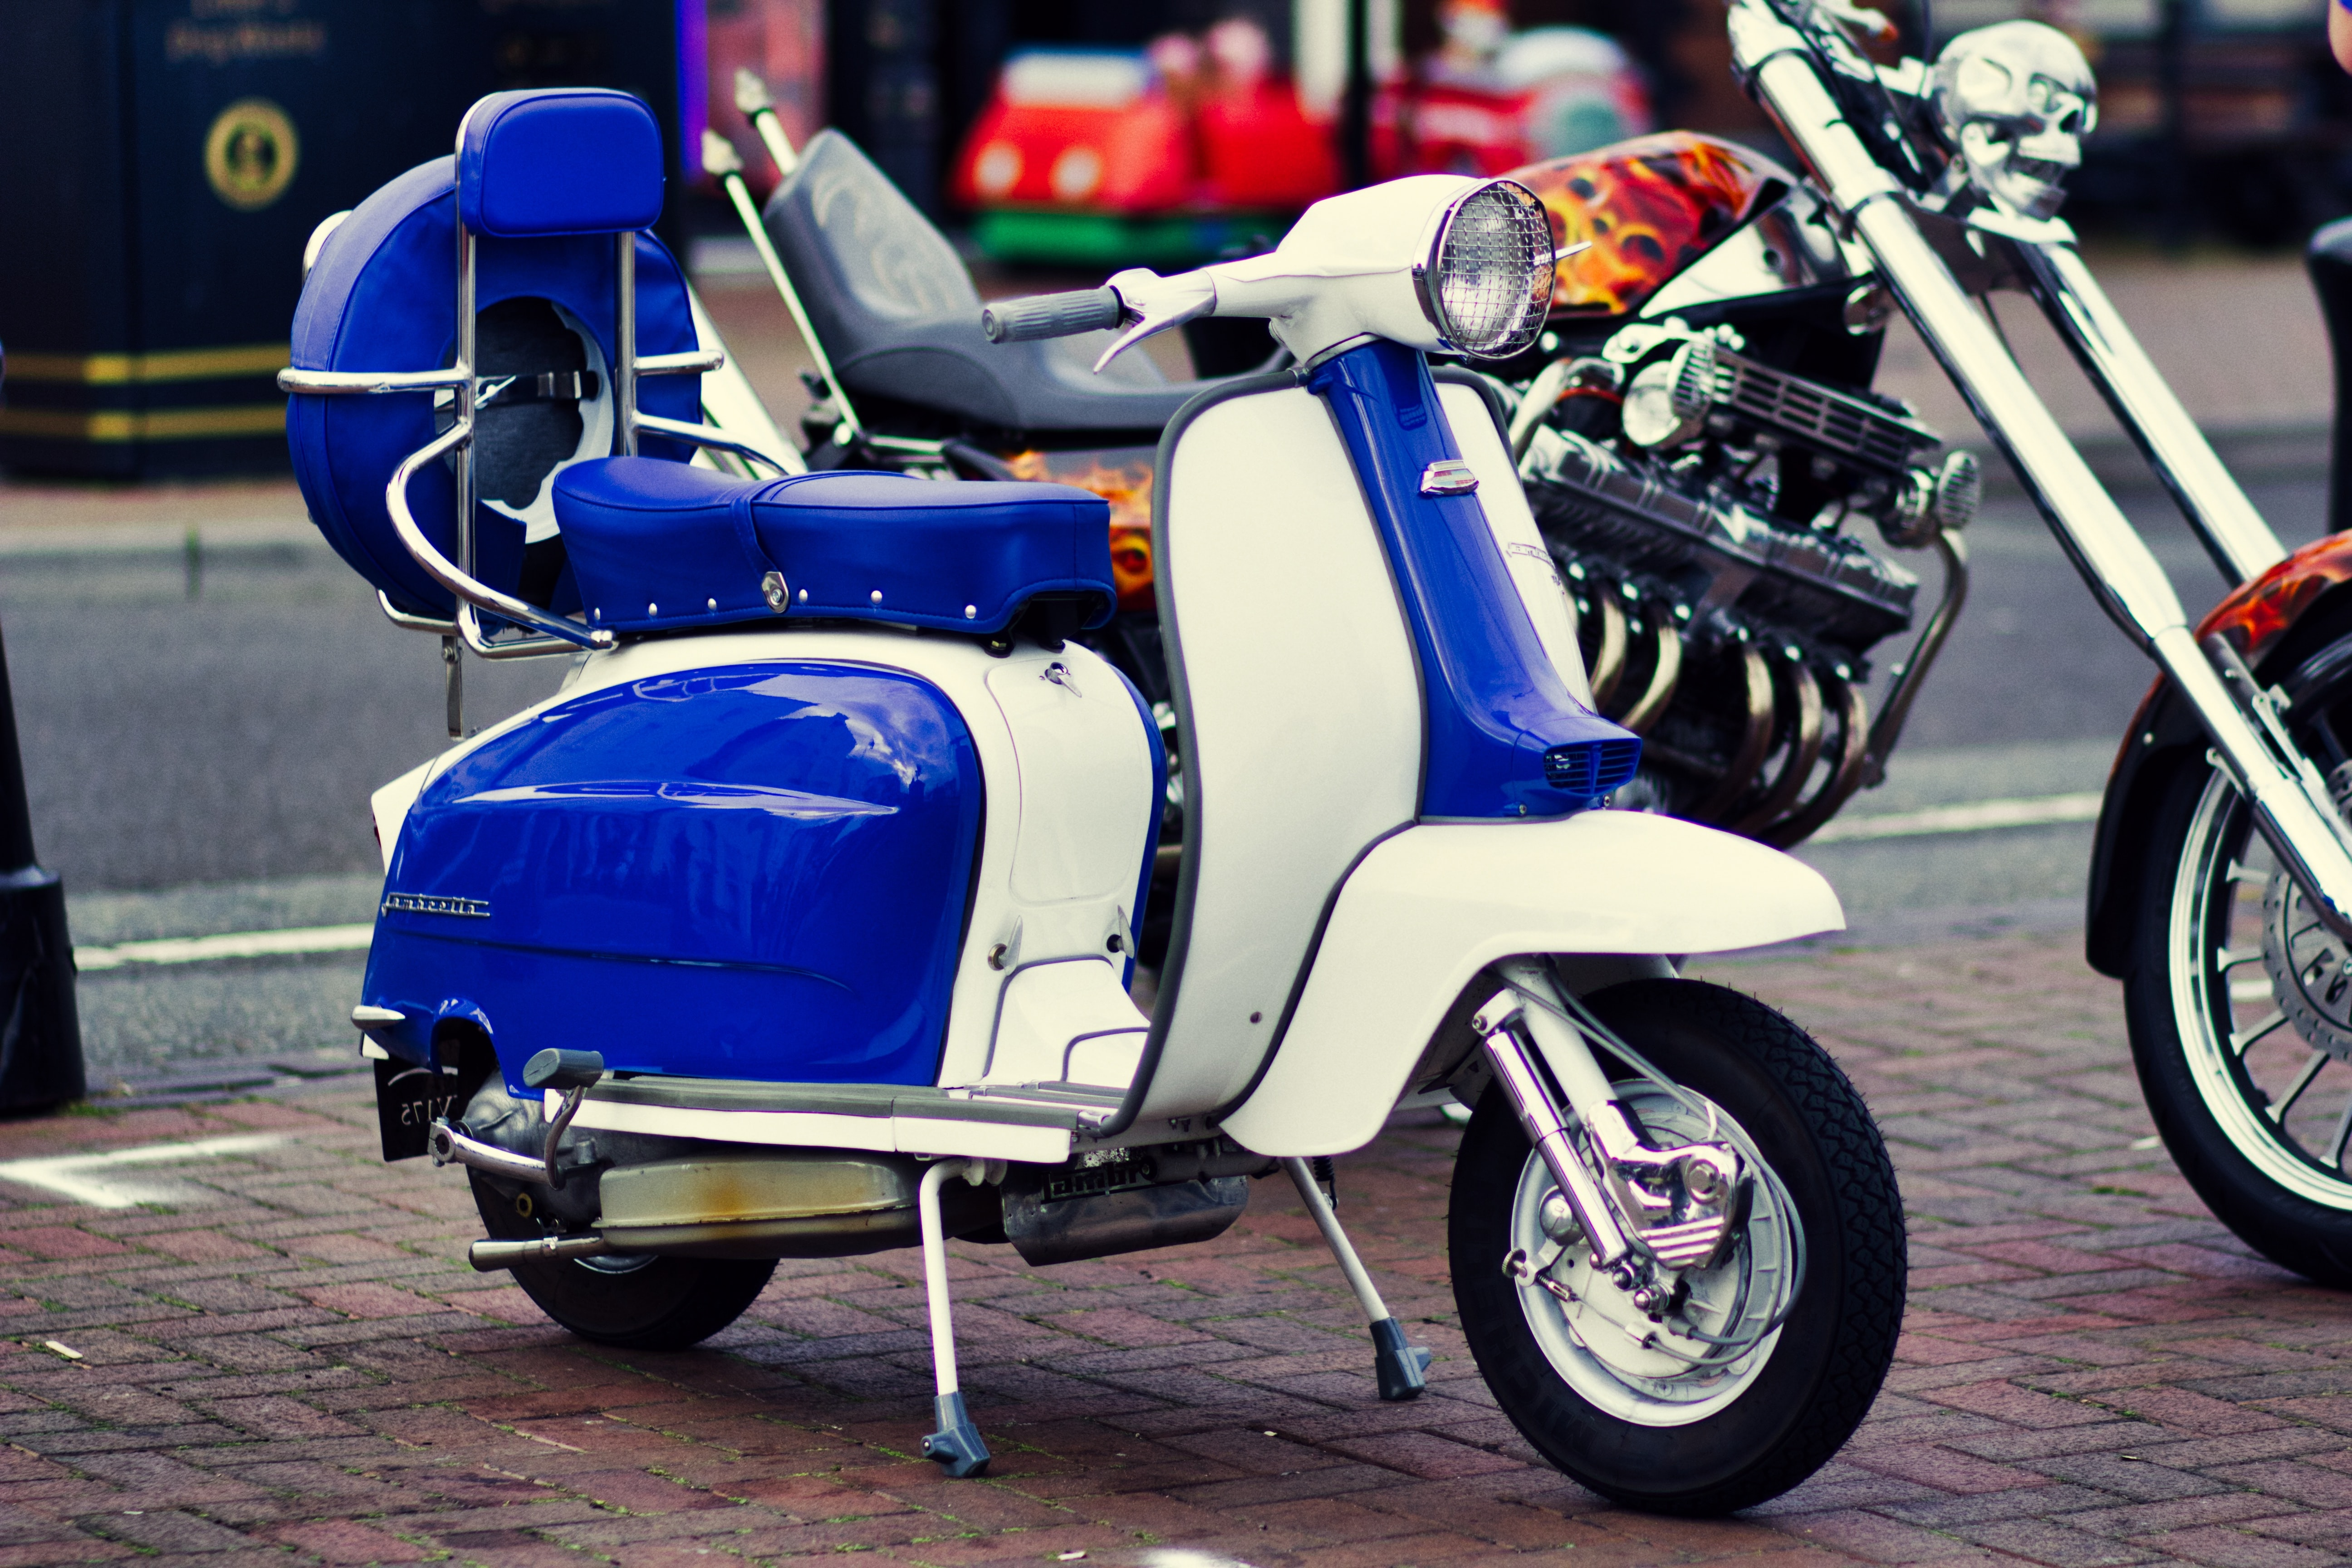 white and blue motor scooter parking beside cruiser motorcycle